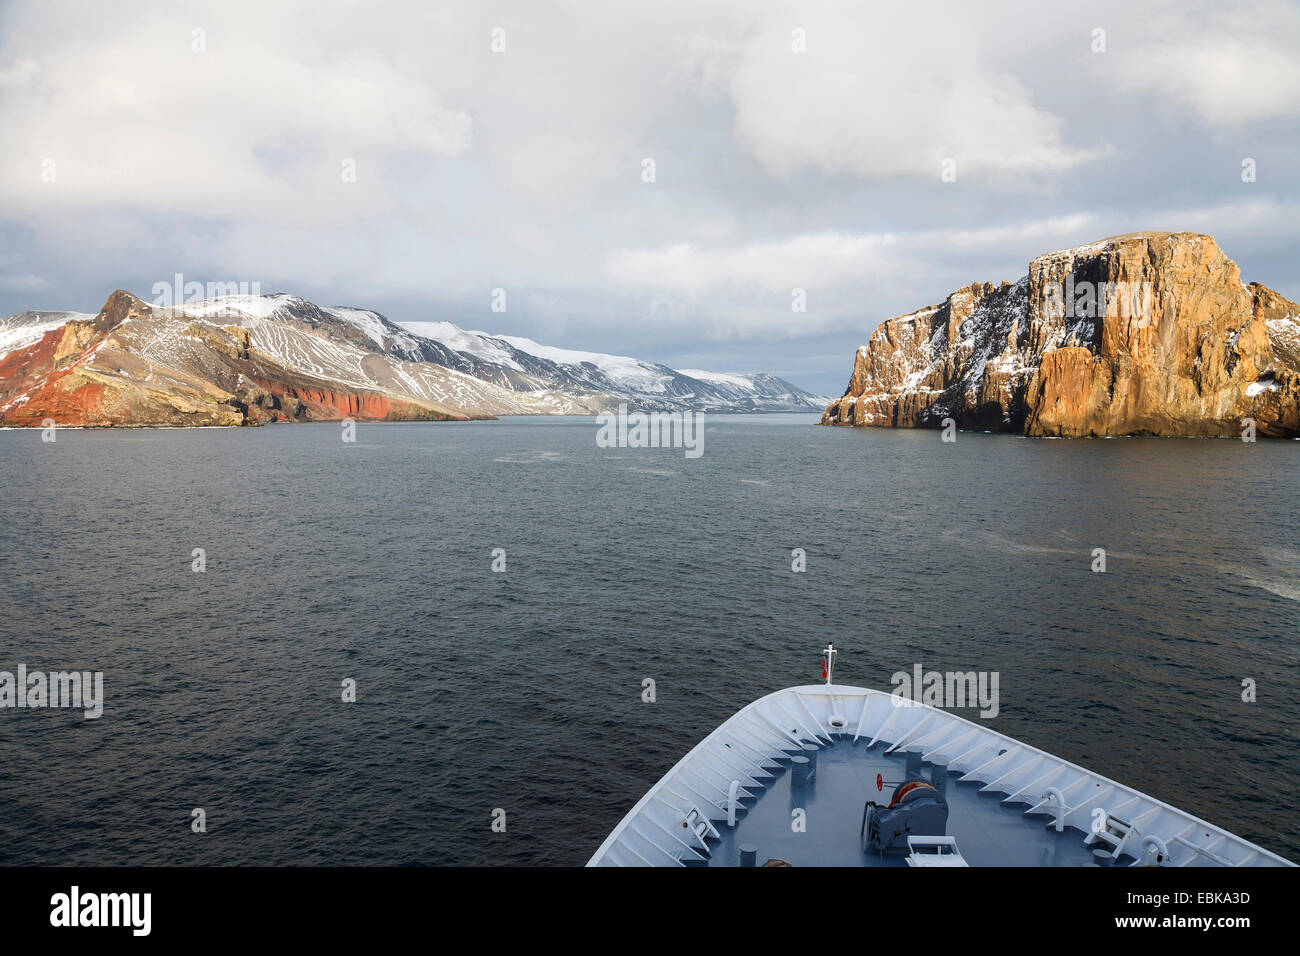 view from cruise to Deception Island, Antarctica, South Shetland Islands - Stock Image